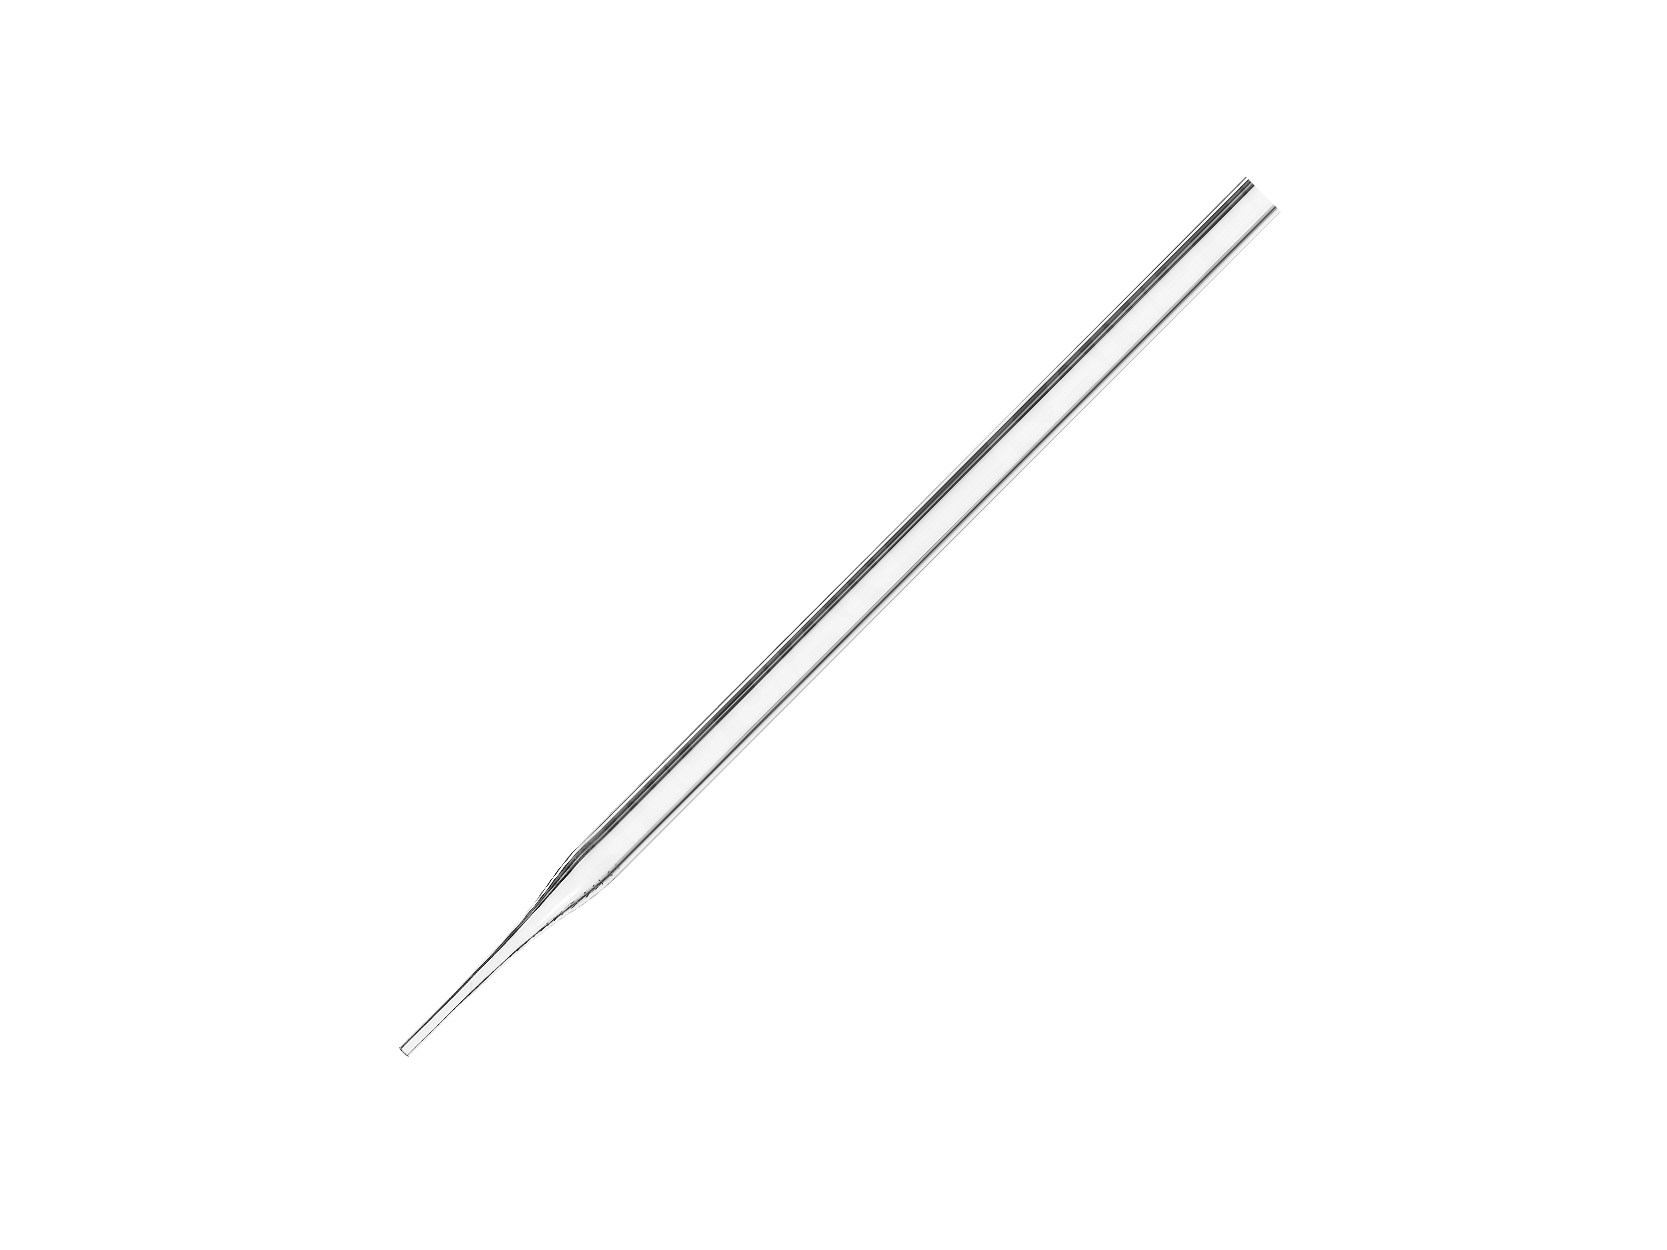 Serological Pipette